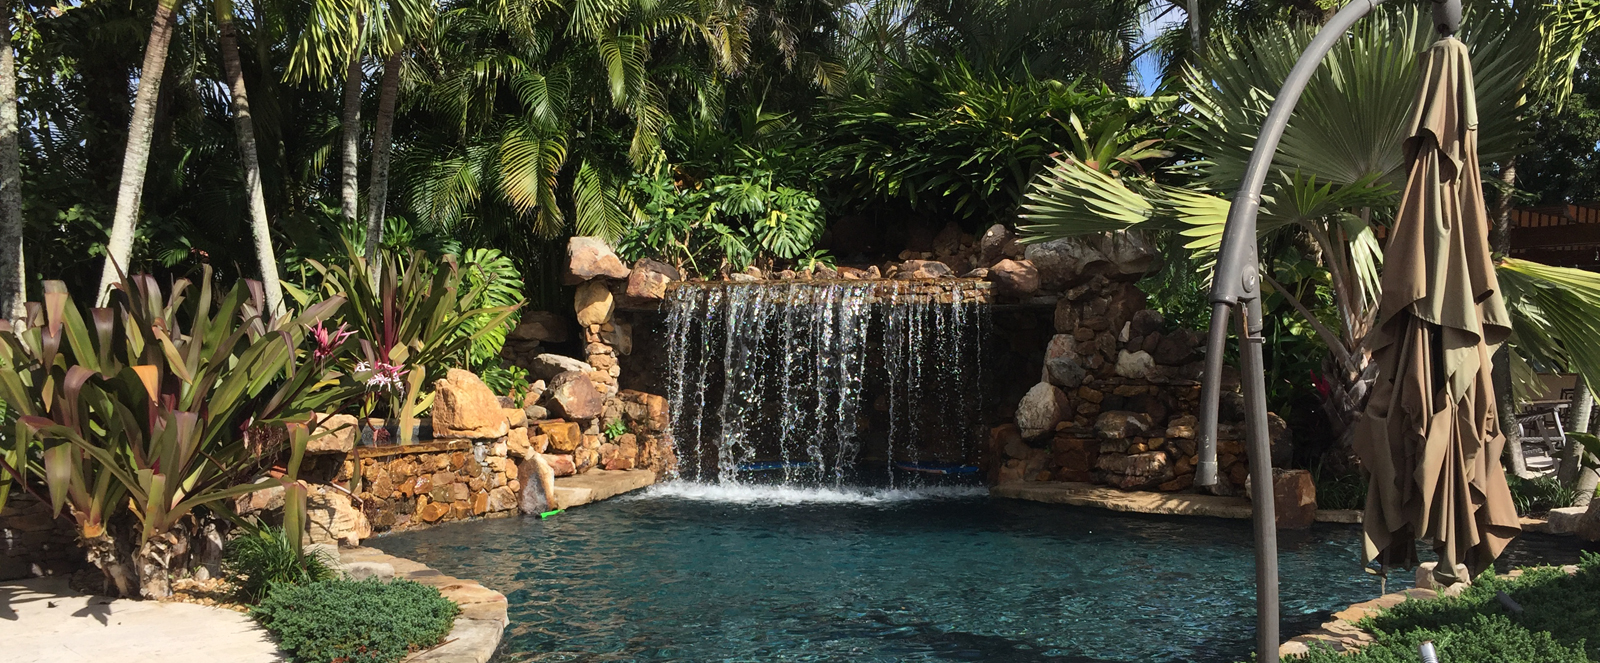 close shot of swimming pool with waterfall in background